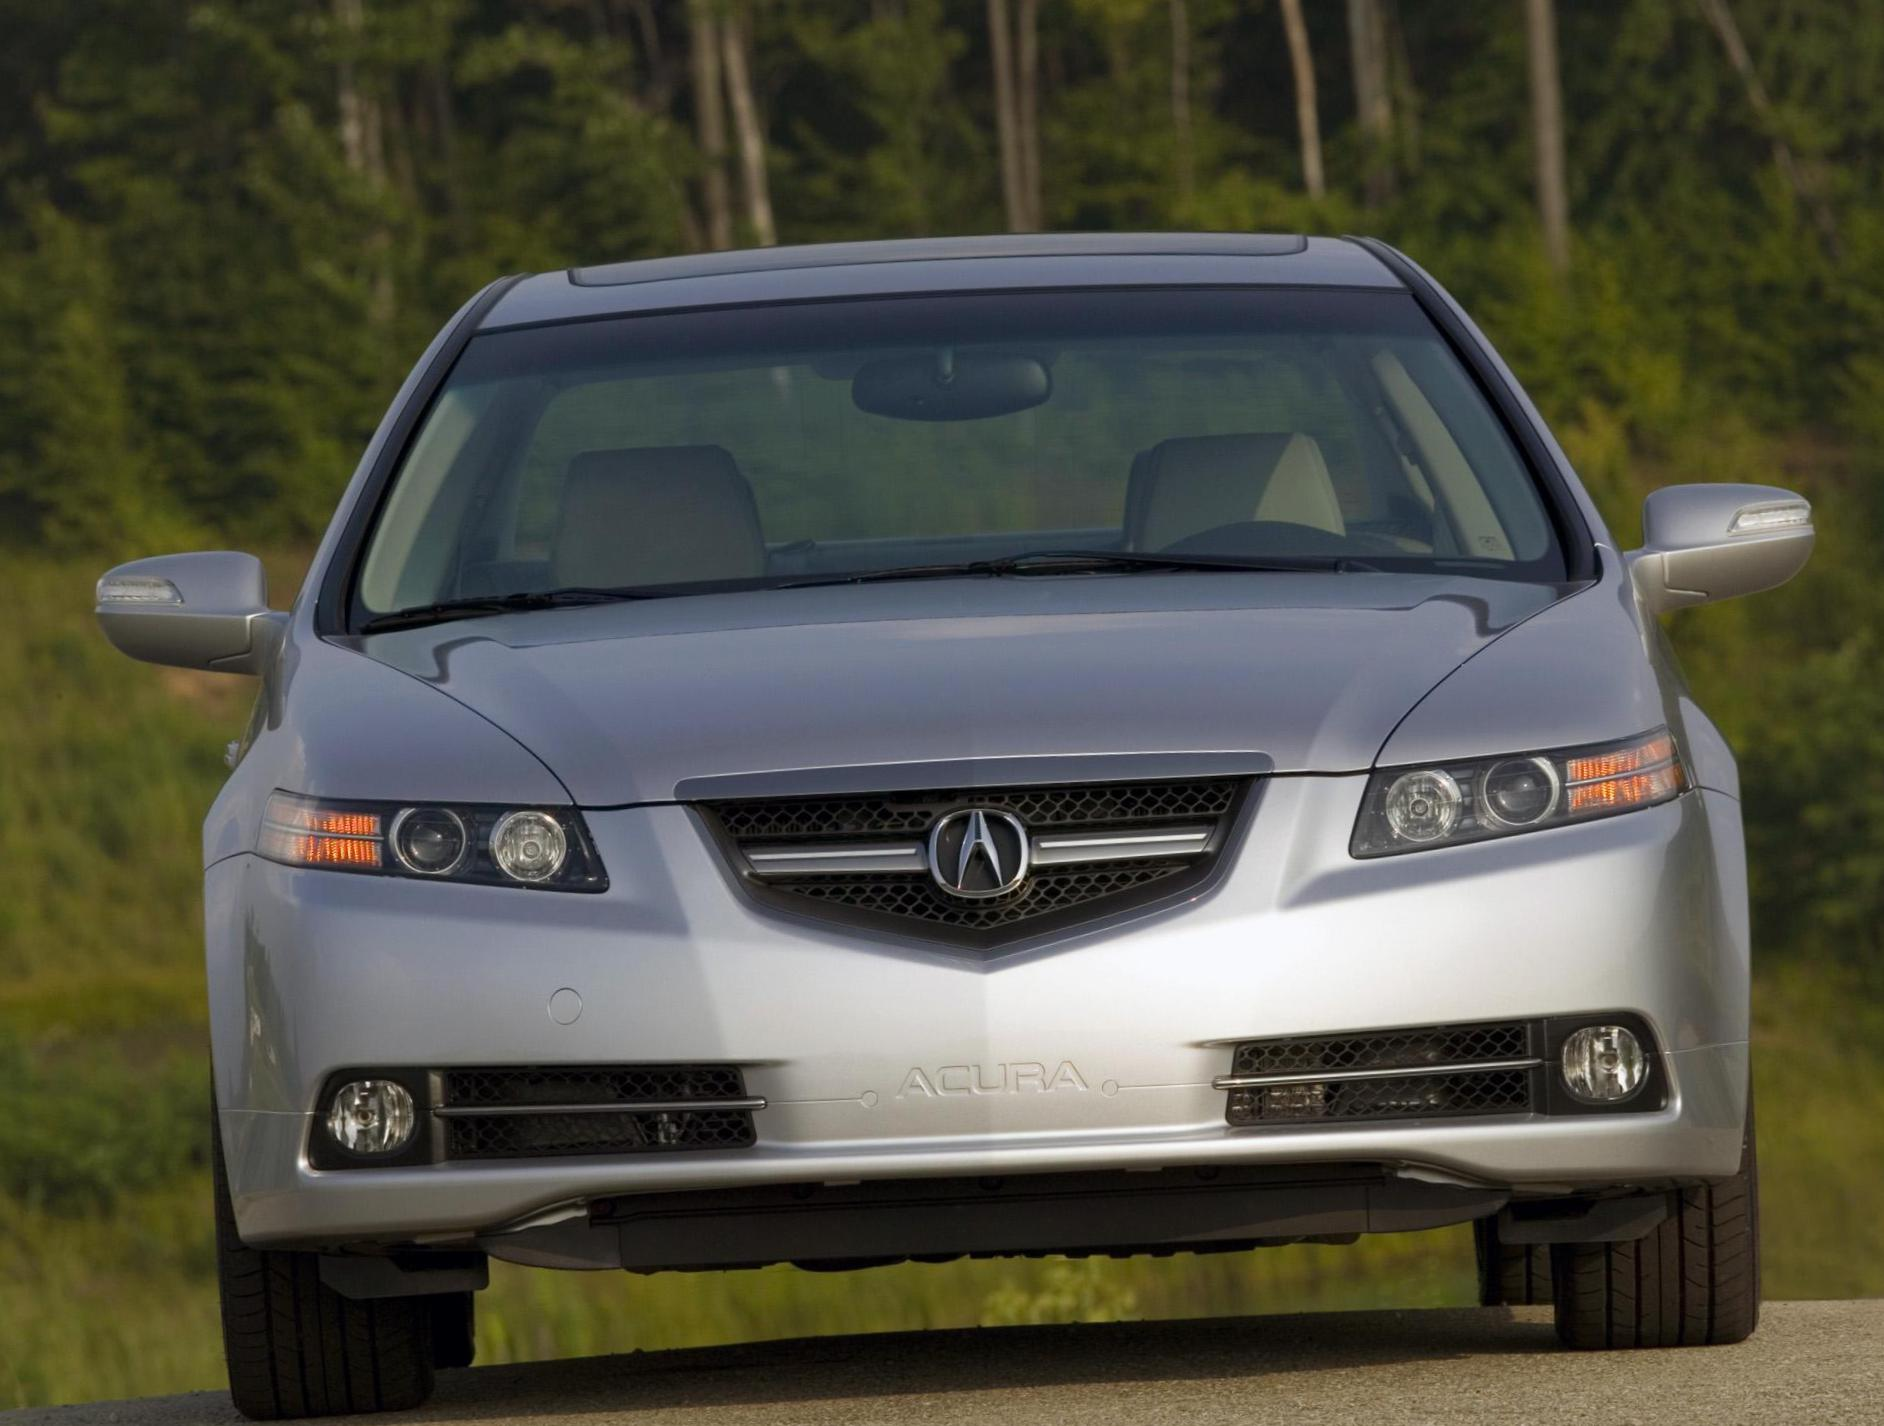 Acura TL Specifications sedan